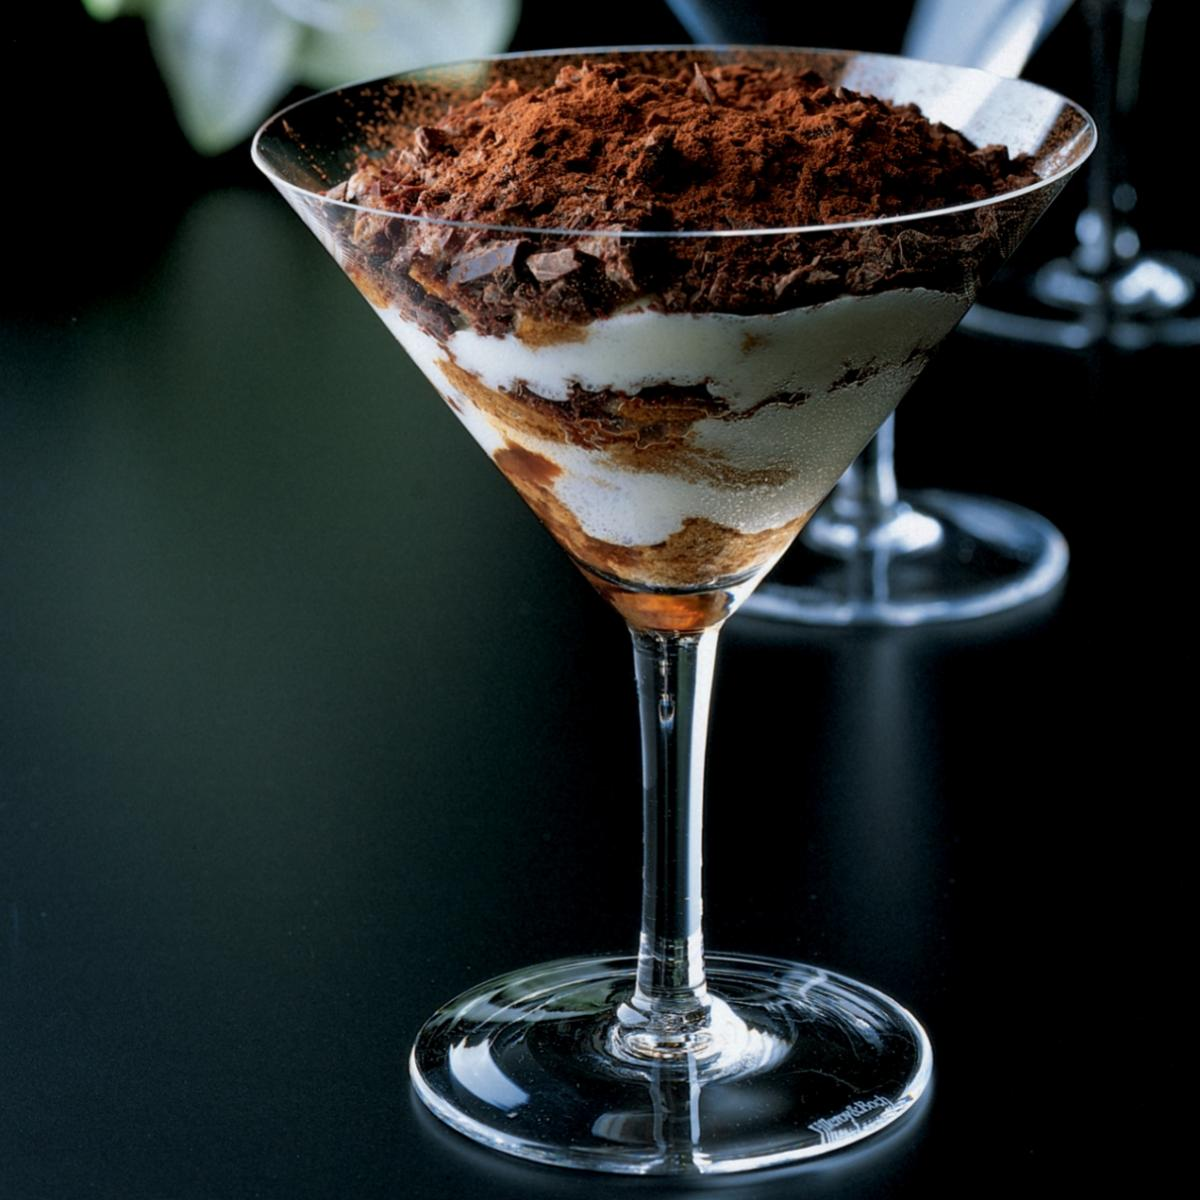 A picture of Delia's Tiramisu recipe